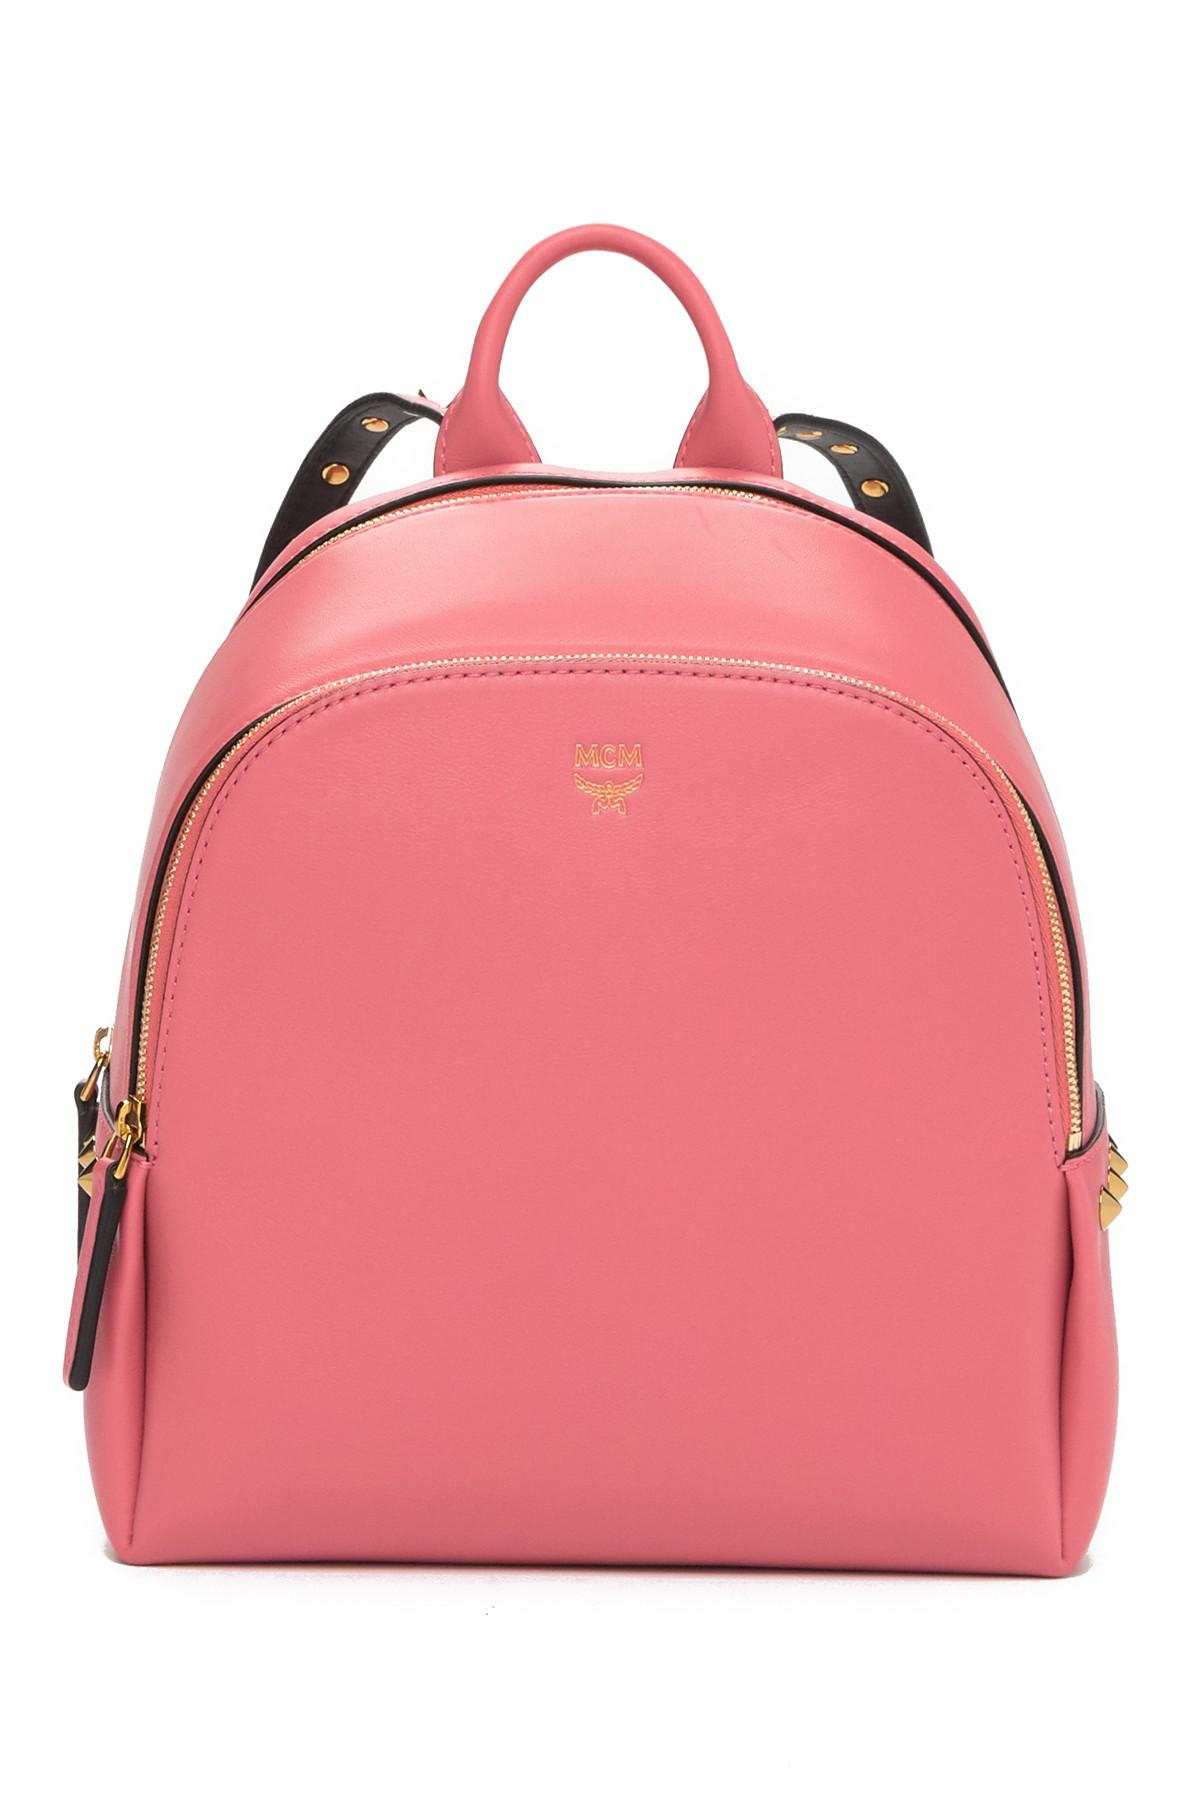 b6adf58ec4 Gallery. Previously sold at  Nordstrom Rack · Women s Mini Backpack Women s  Vera Bradley Campus Tech Women s Mcm ...